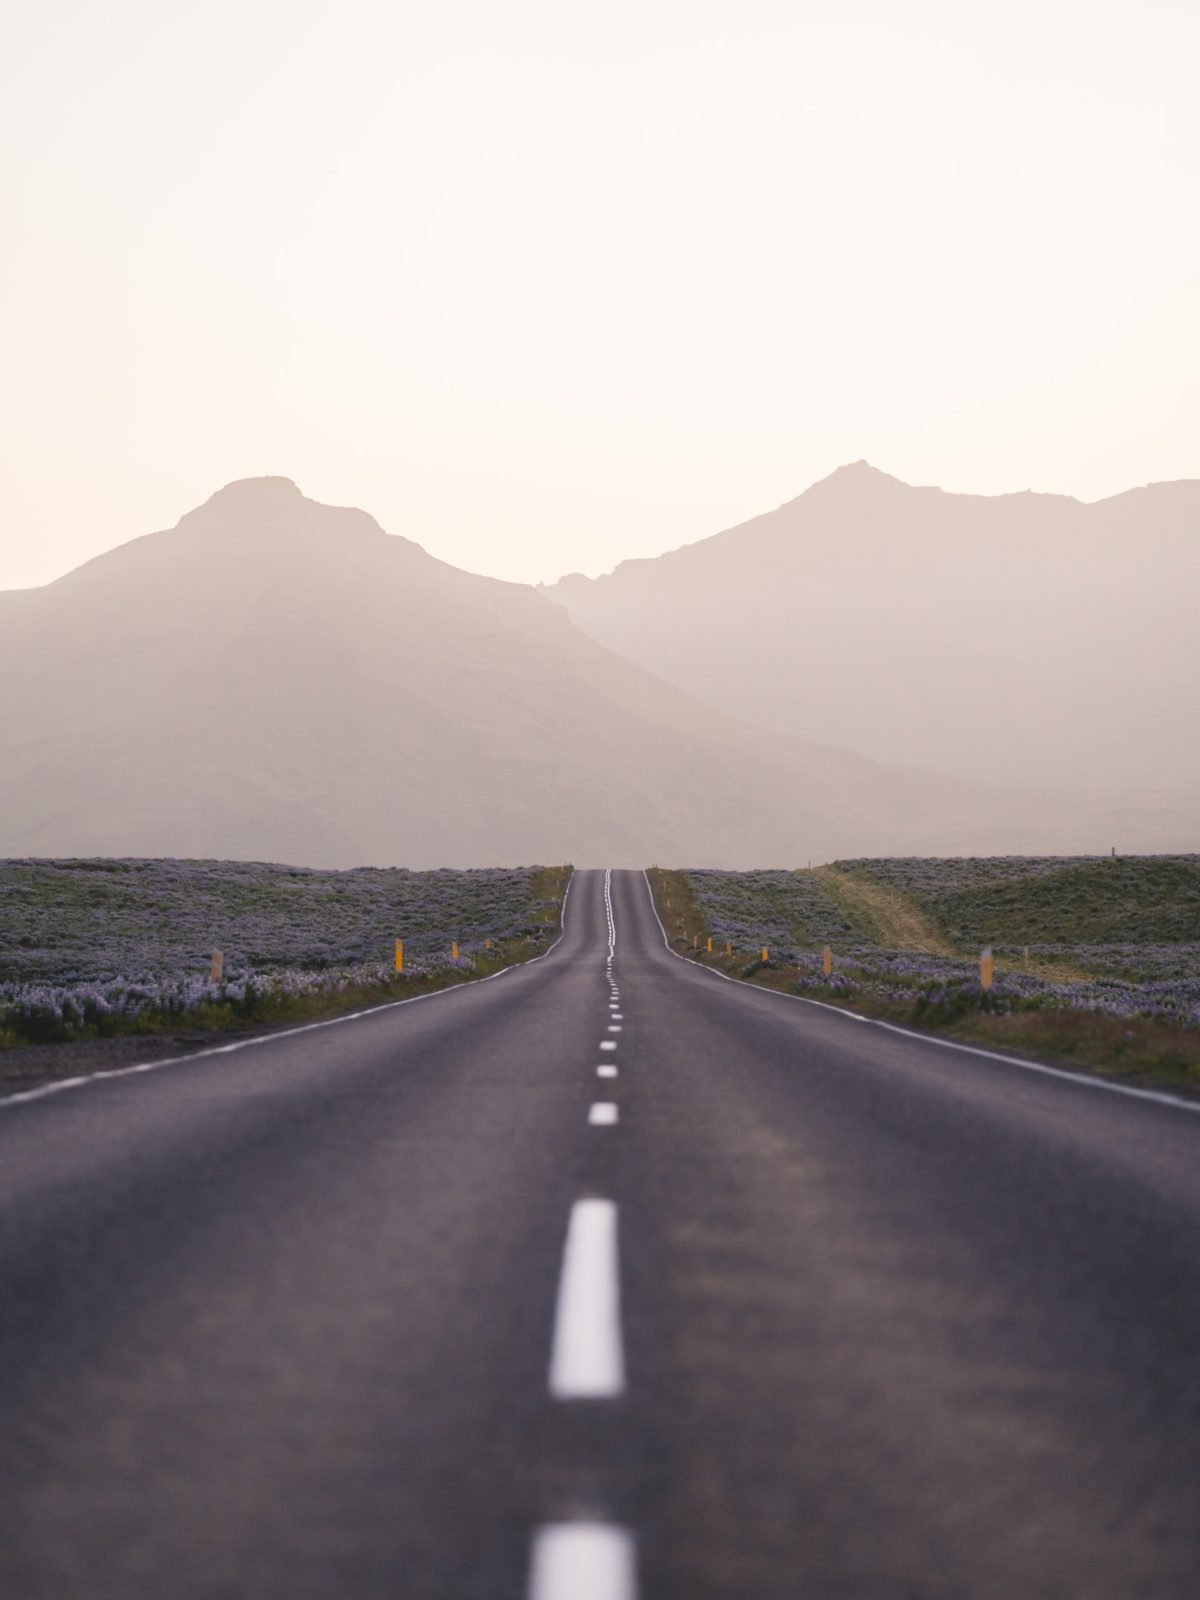 Long Road into the Distance